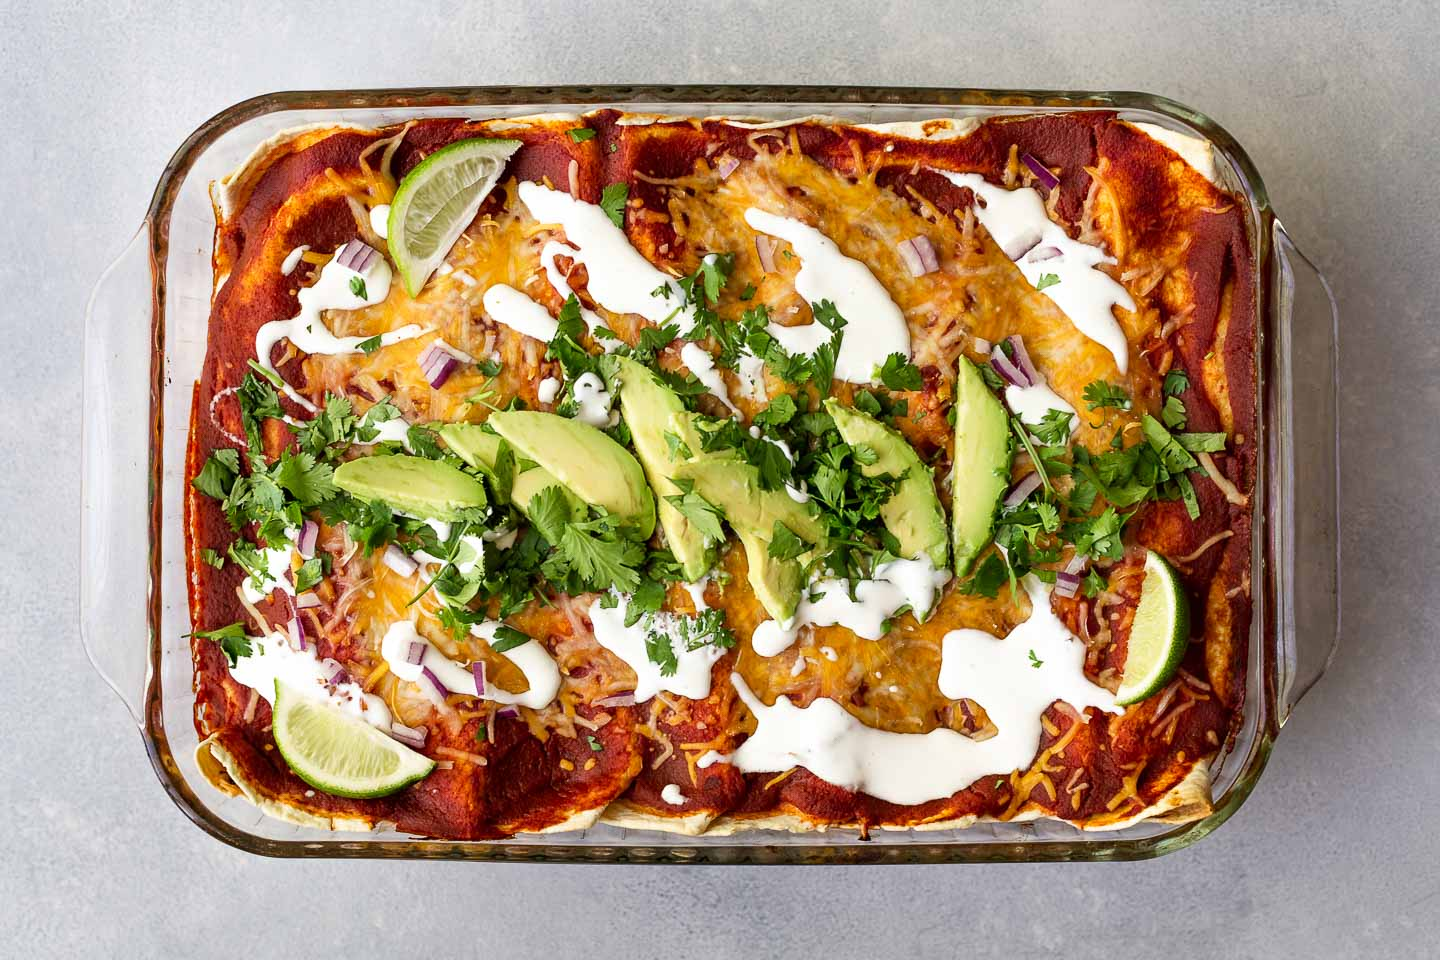 sweet potato enchiladas topped with avocado and cilantro.